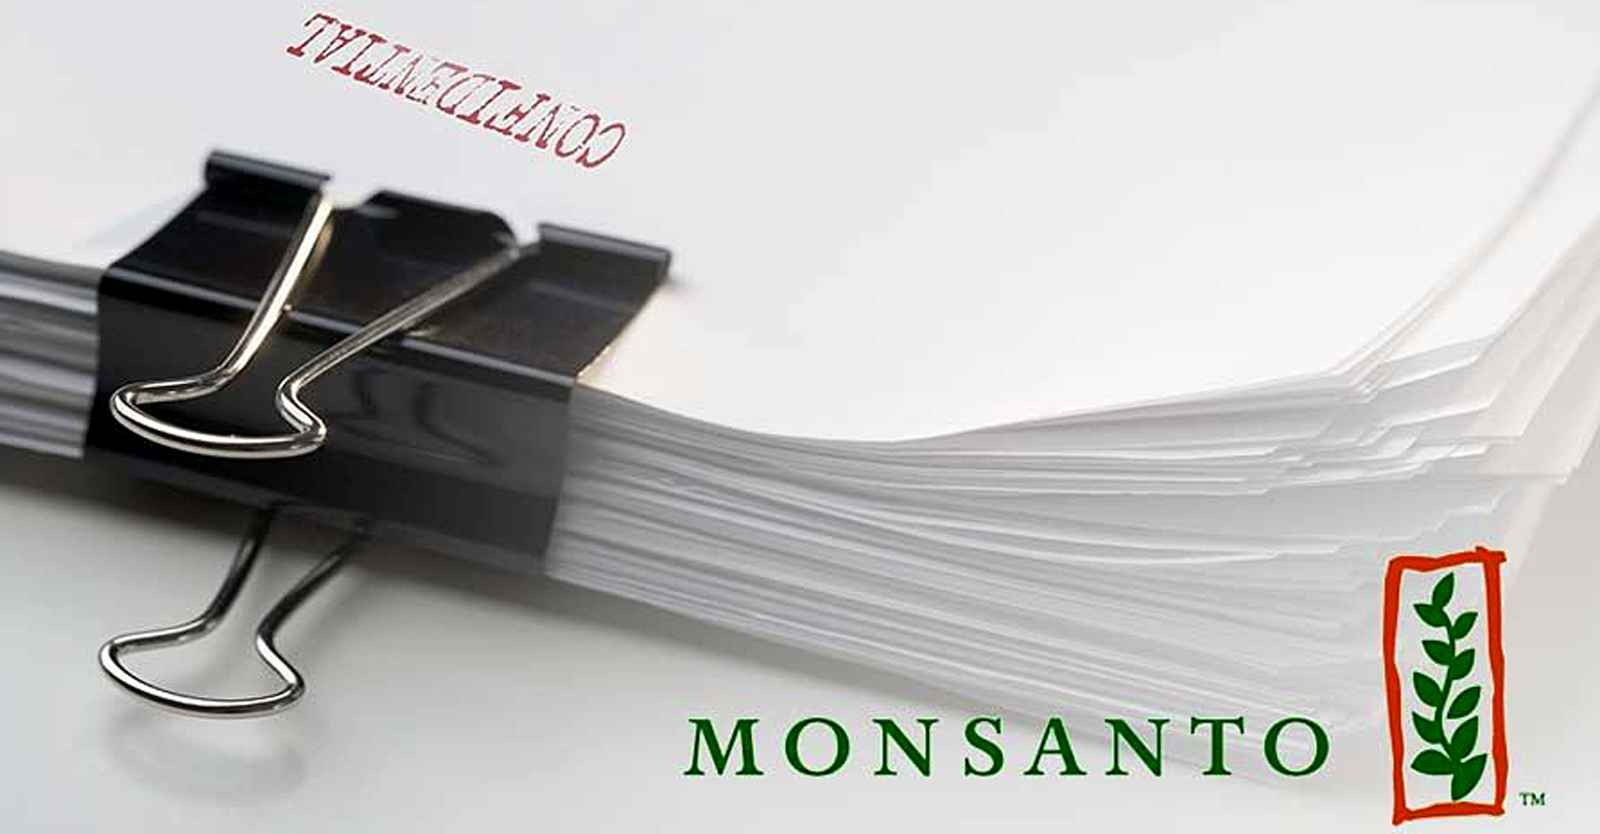 'the-whole-truth'-on-monsanto's-campaign-to-discredit-scientists,-deceive-public